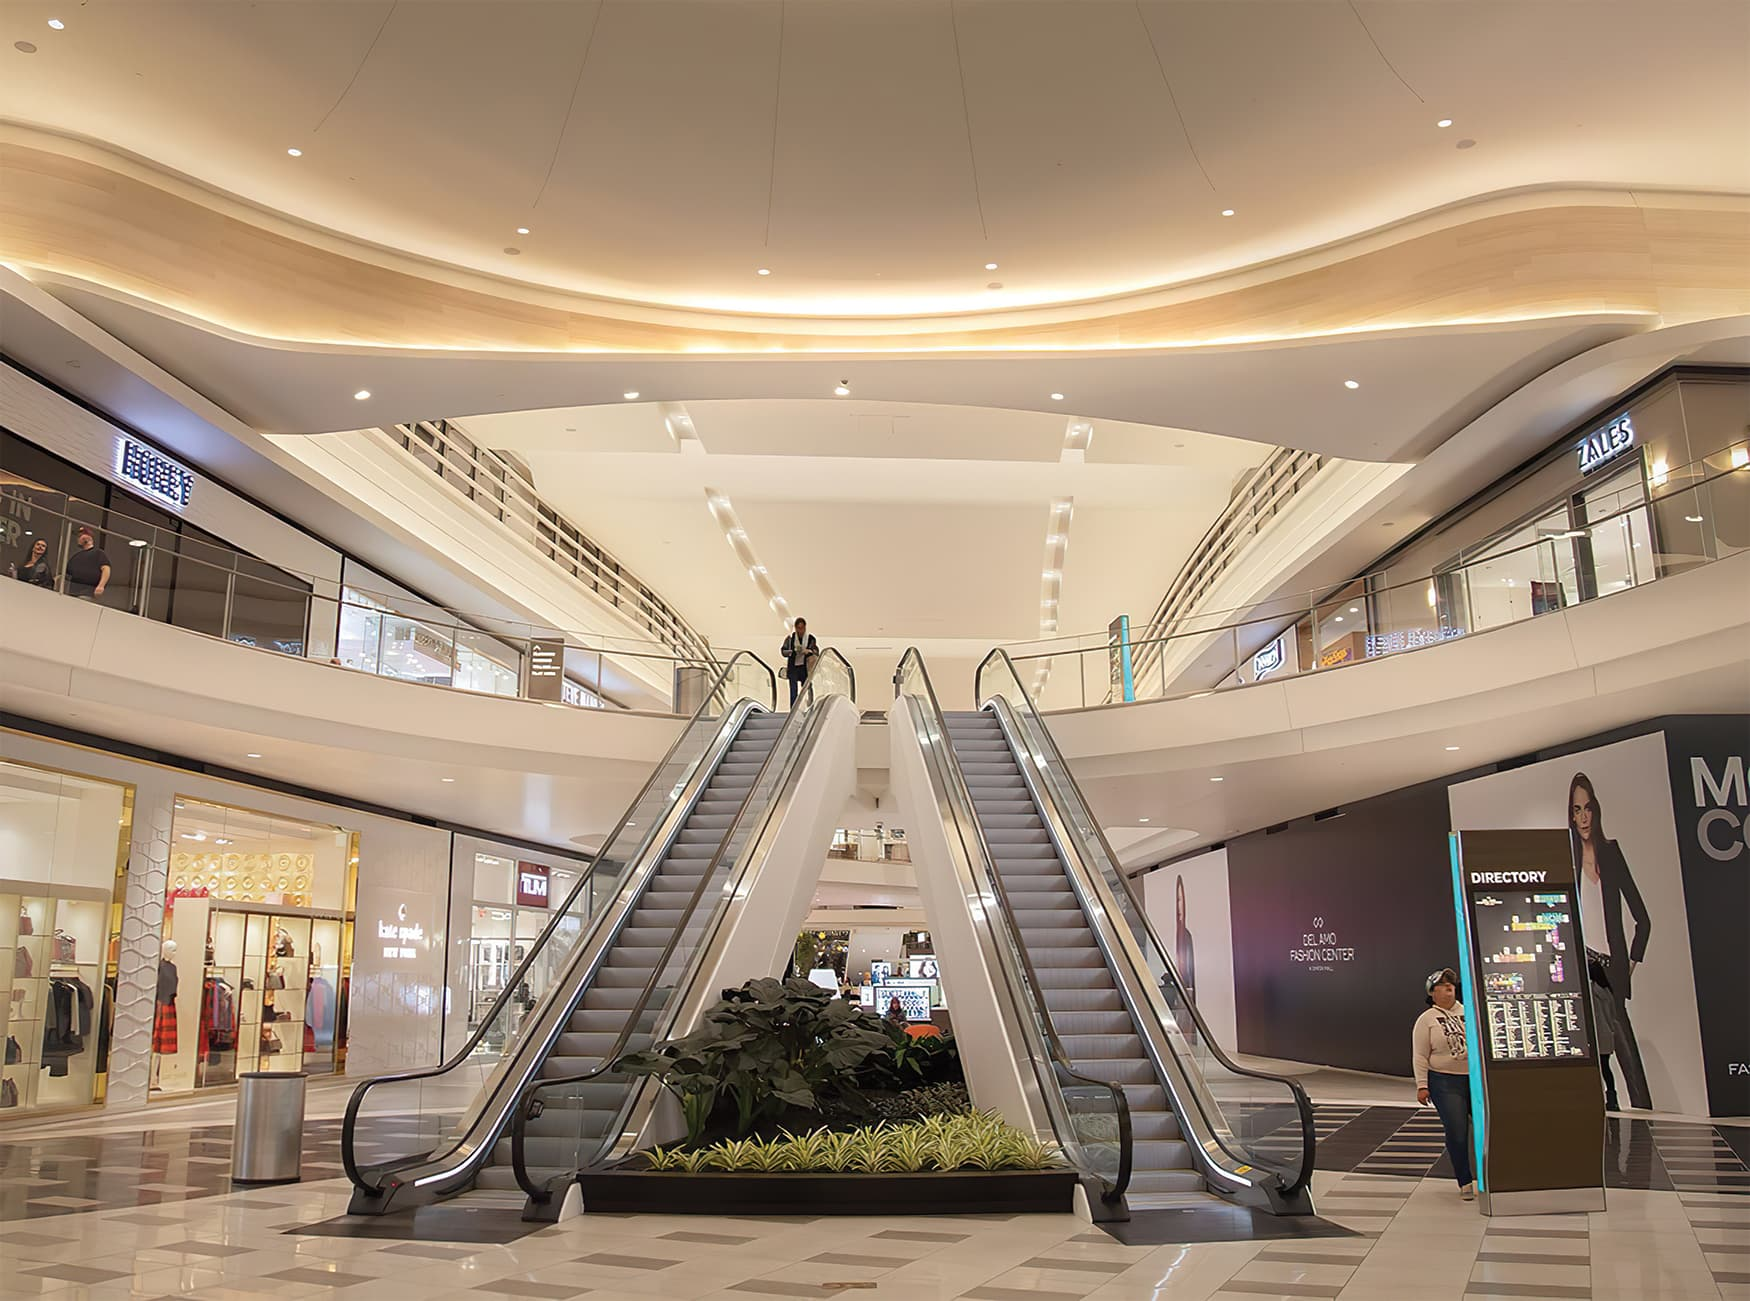 Del Amo Fashion Center located in Torrance, California. Retail shopping center digital directory map and pedestrian wayfinding design.